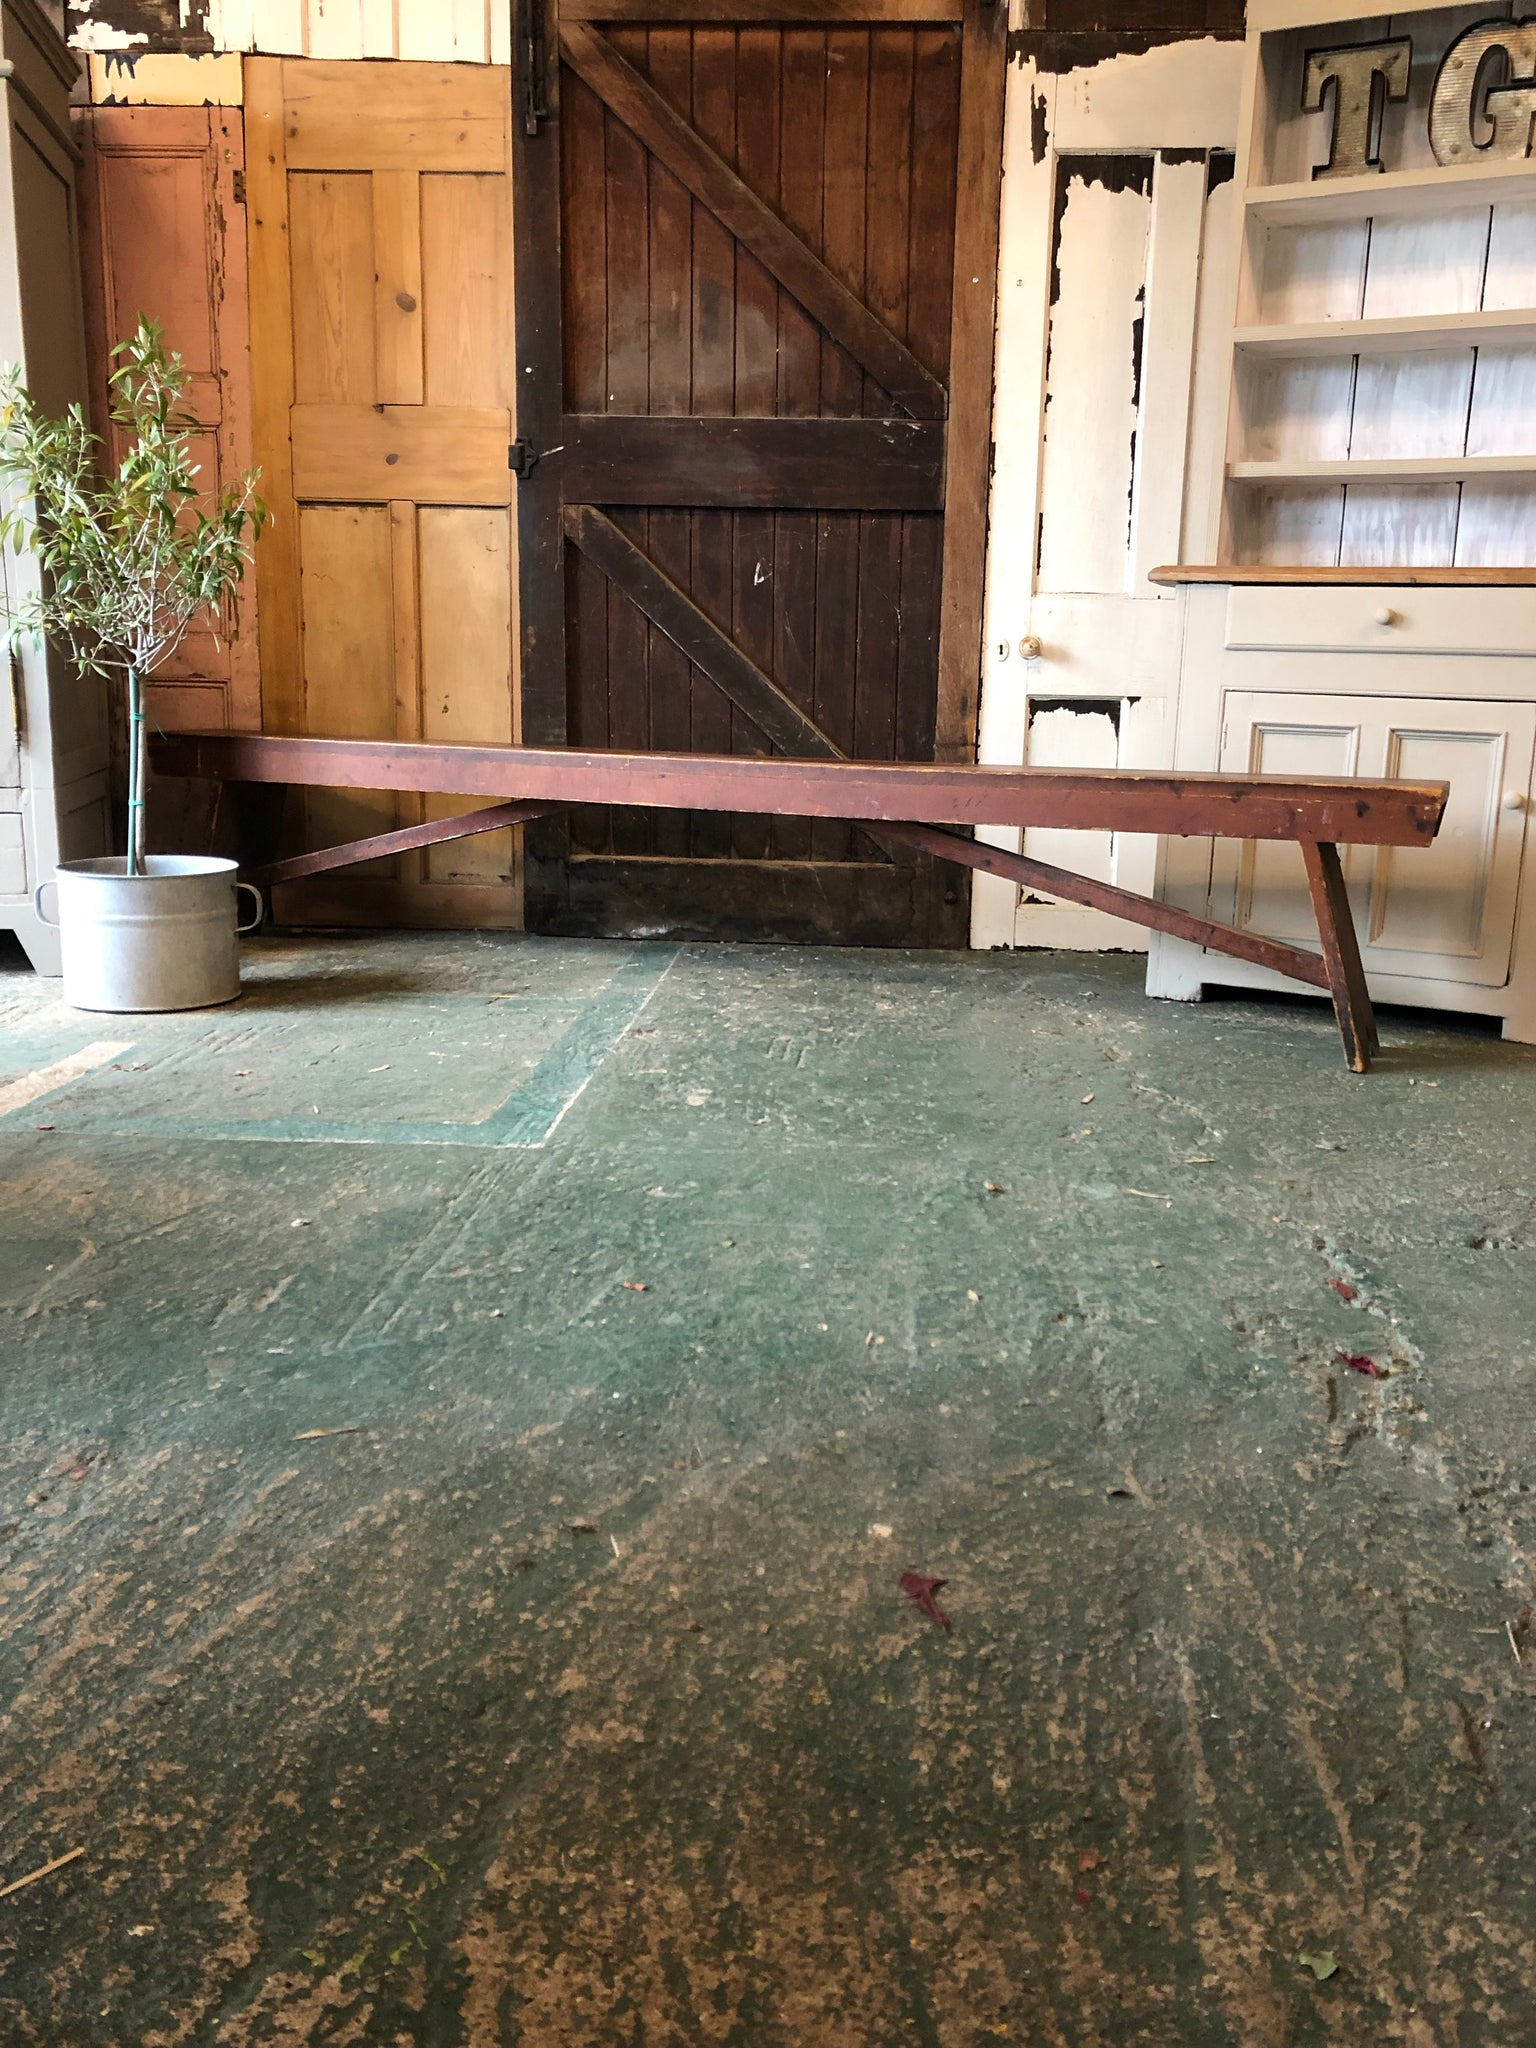 Vintage Rustic Old School Bench (One of a Pair)